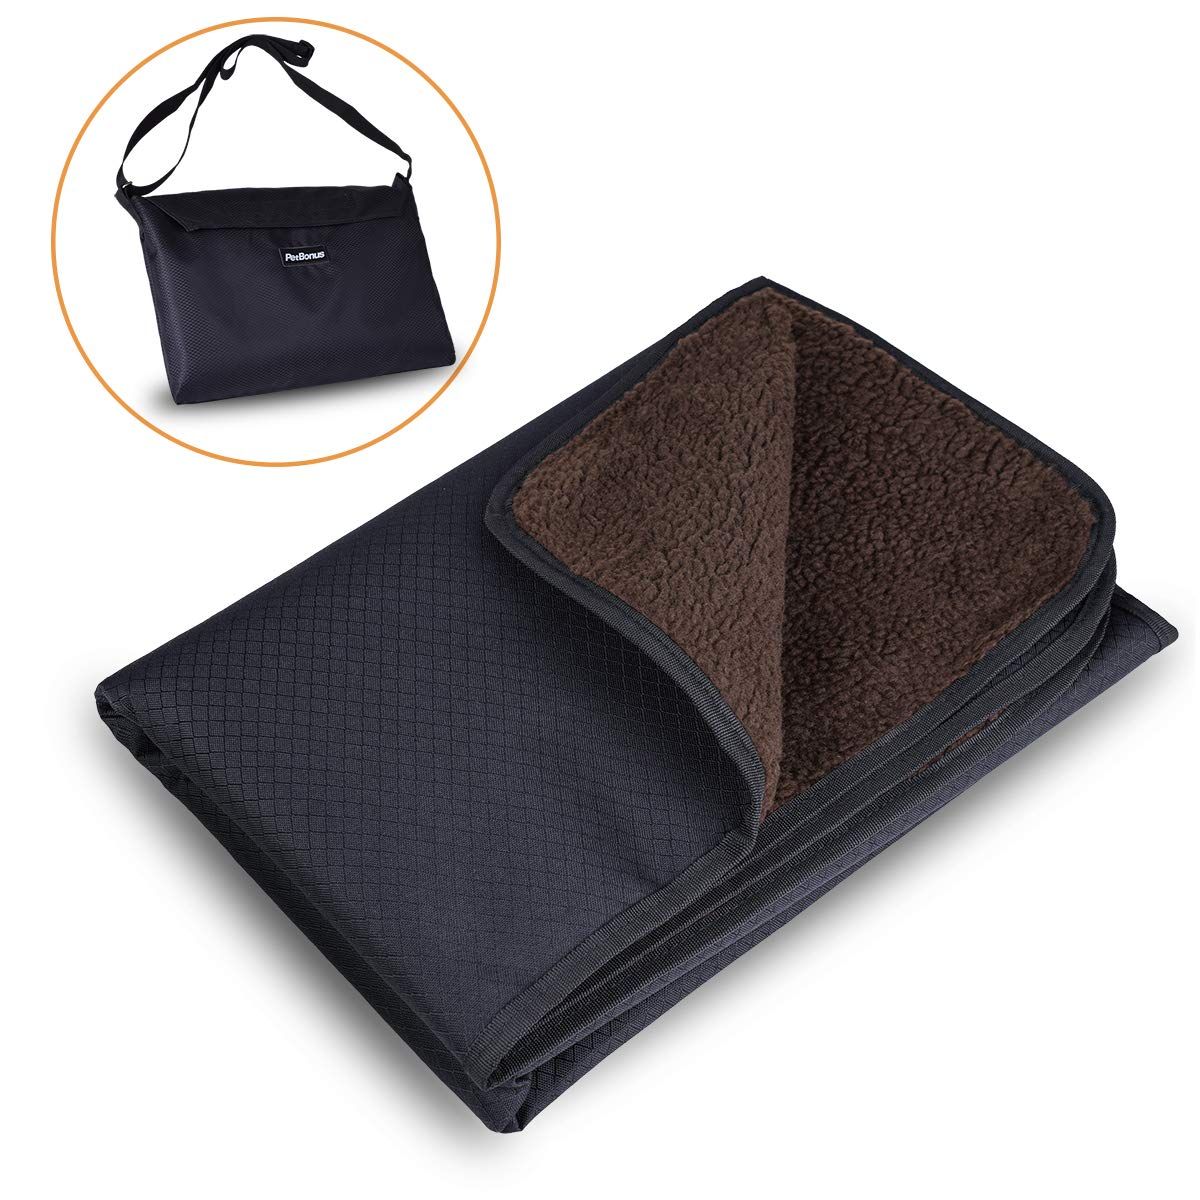 PetBonus Collapsible Dog Blanket, Waterproof and Washable Mat with Shoulder Bag, for Bed Sofa Car Seat and Outdoor, Large, 47 x 35 inches